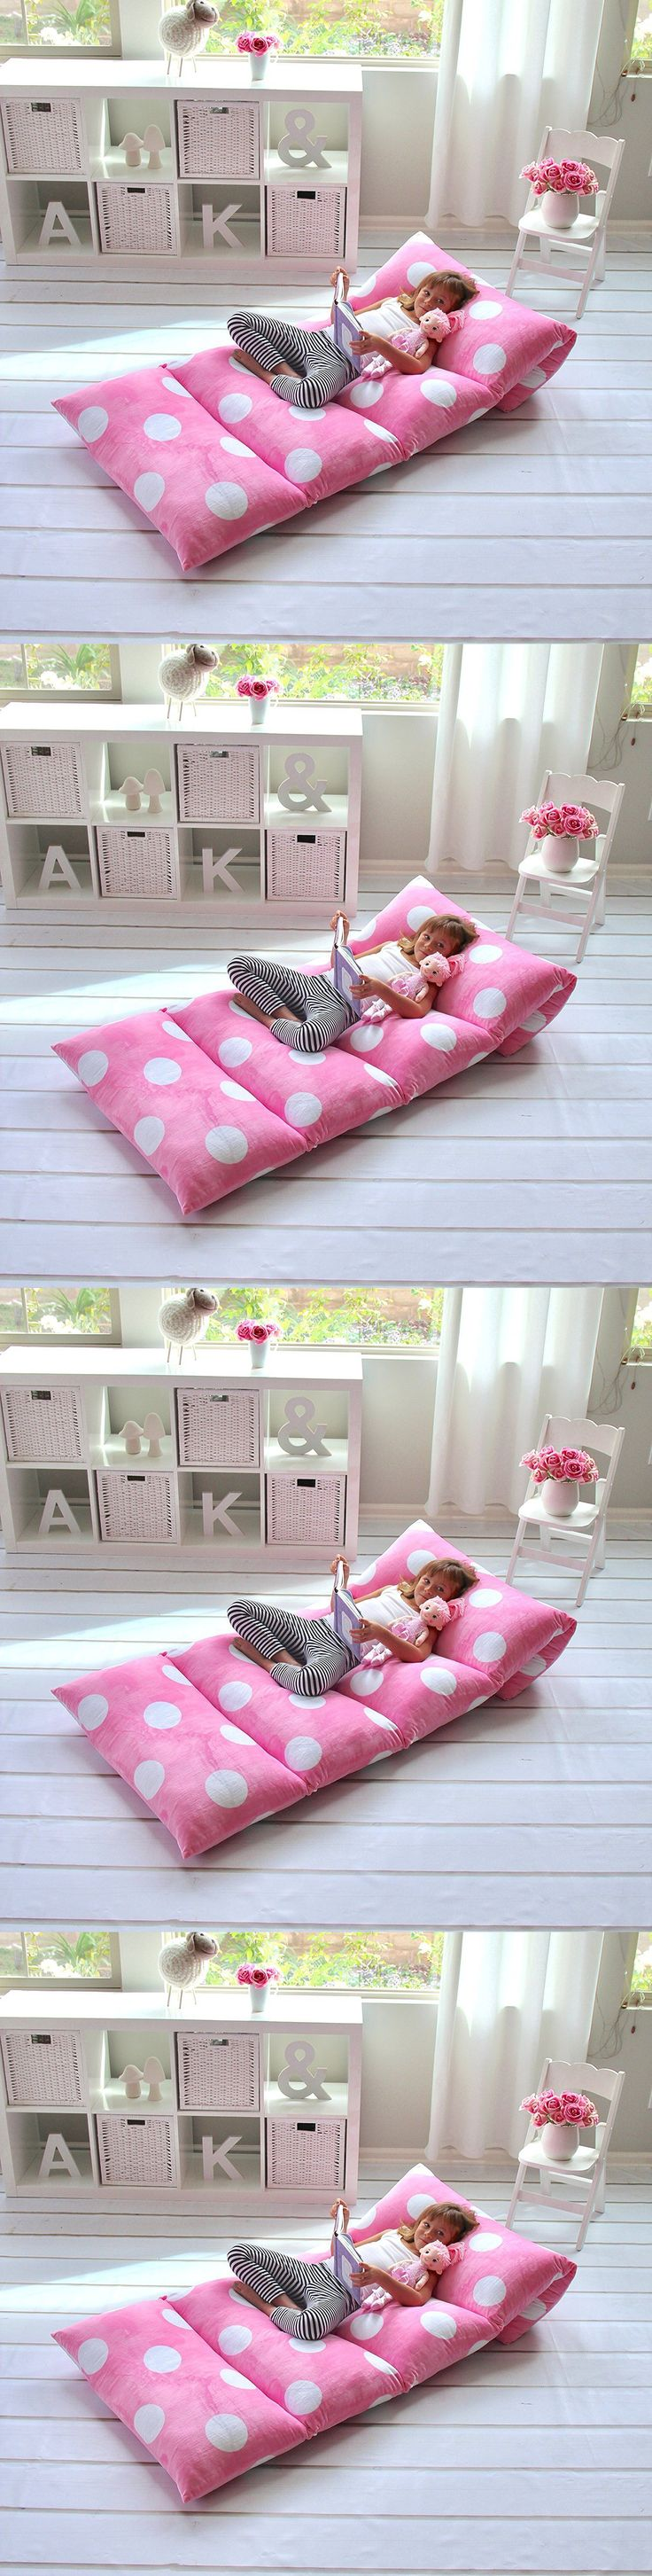 best 25+ toddler armchair ideas on pinterest | small toddler rooms